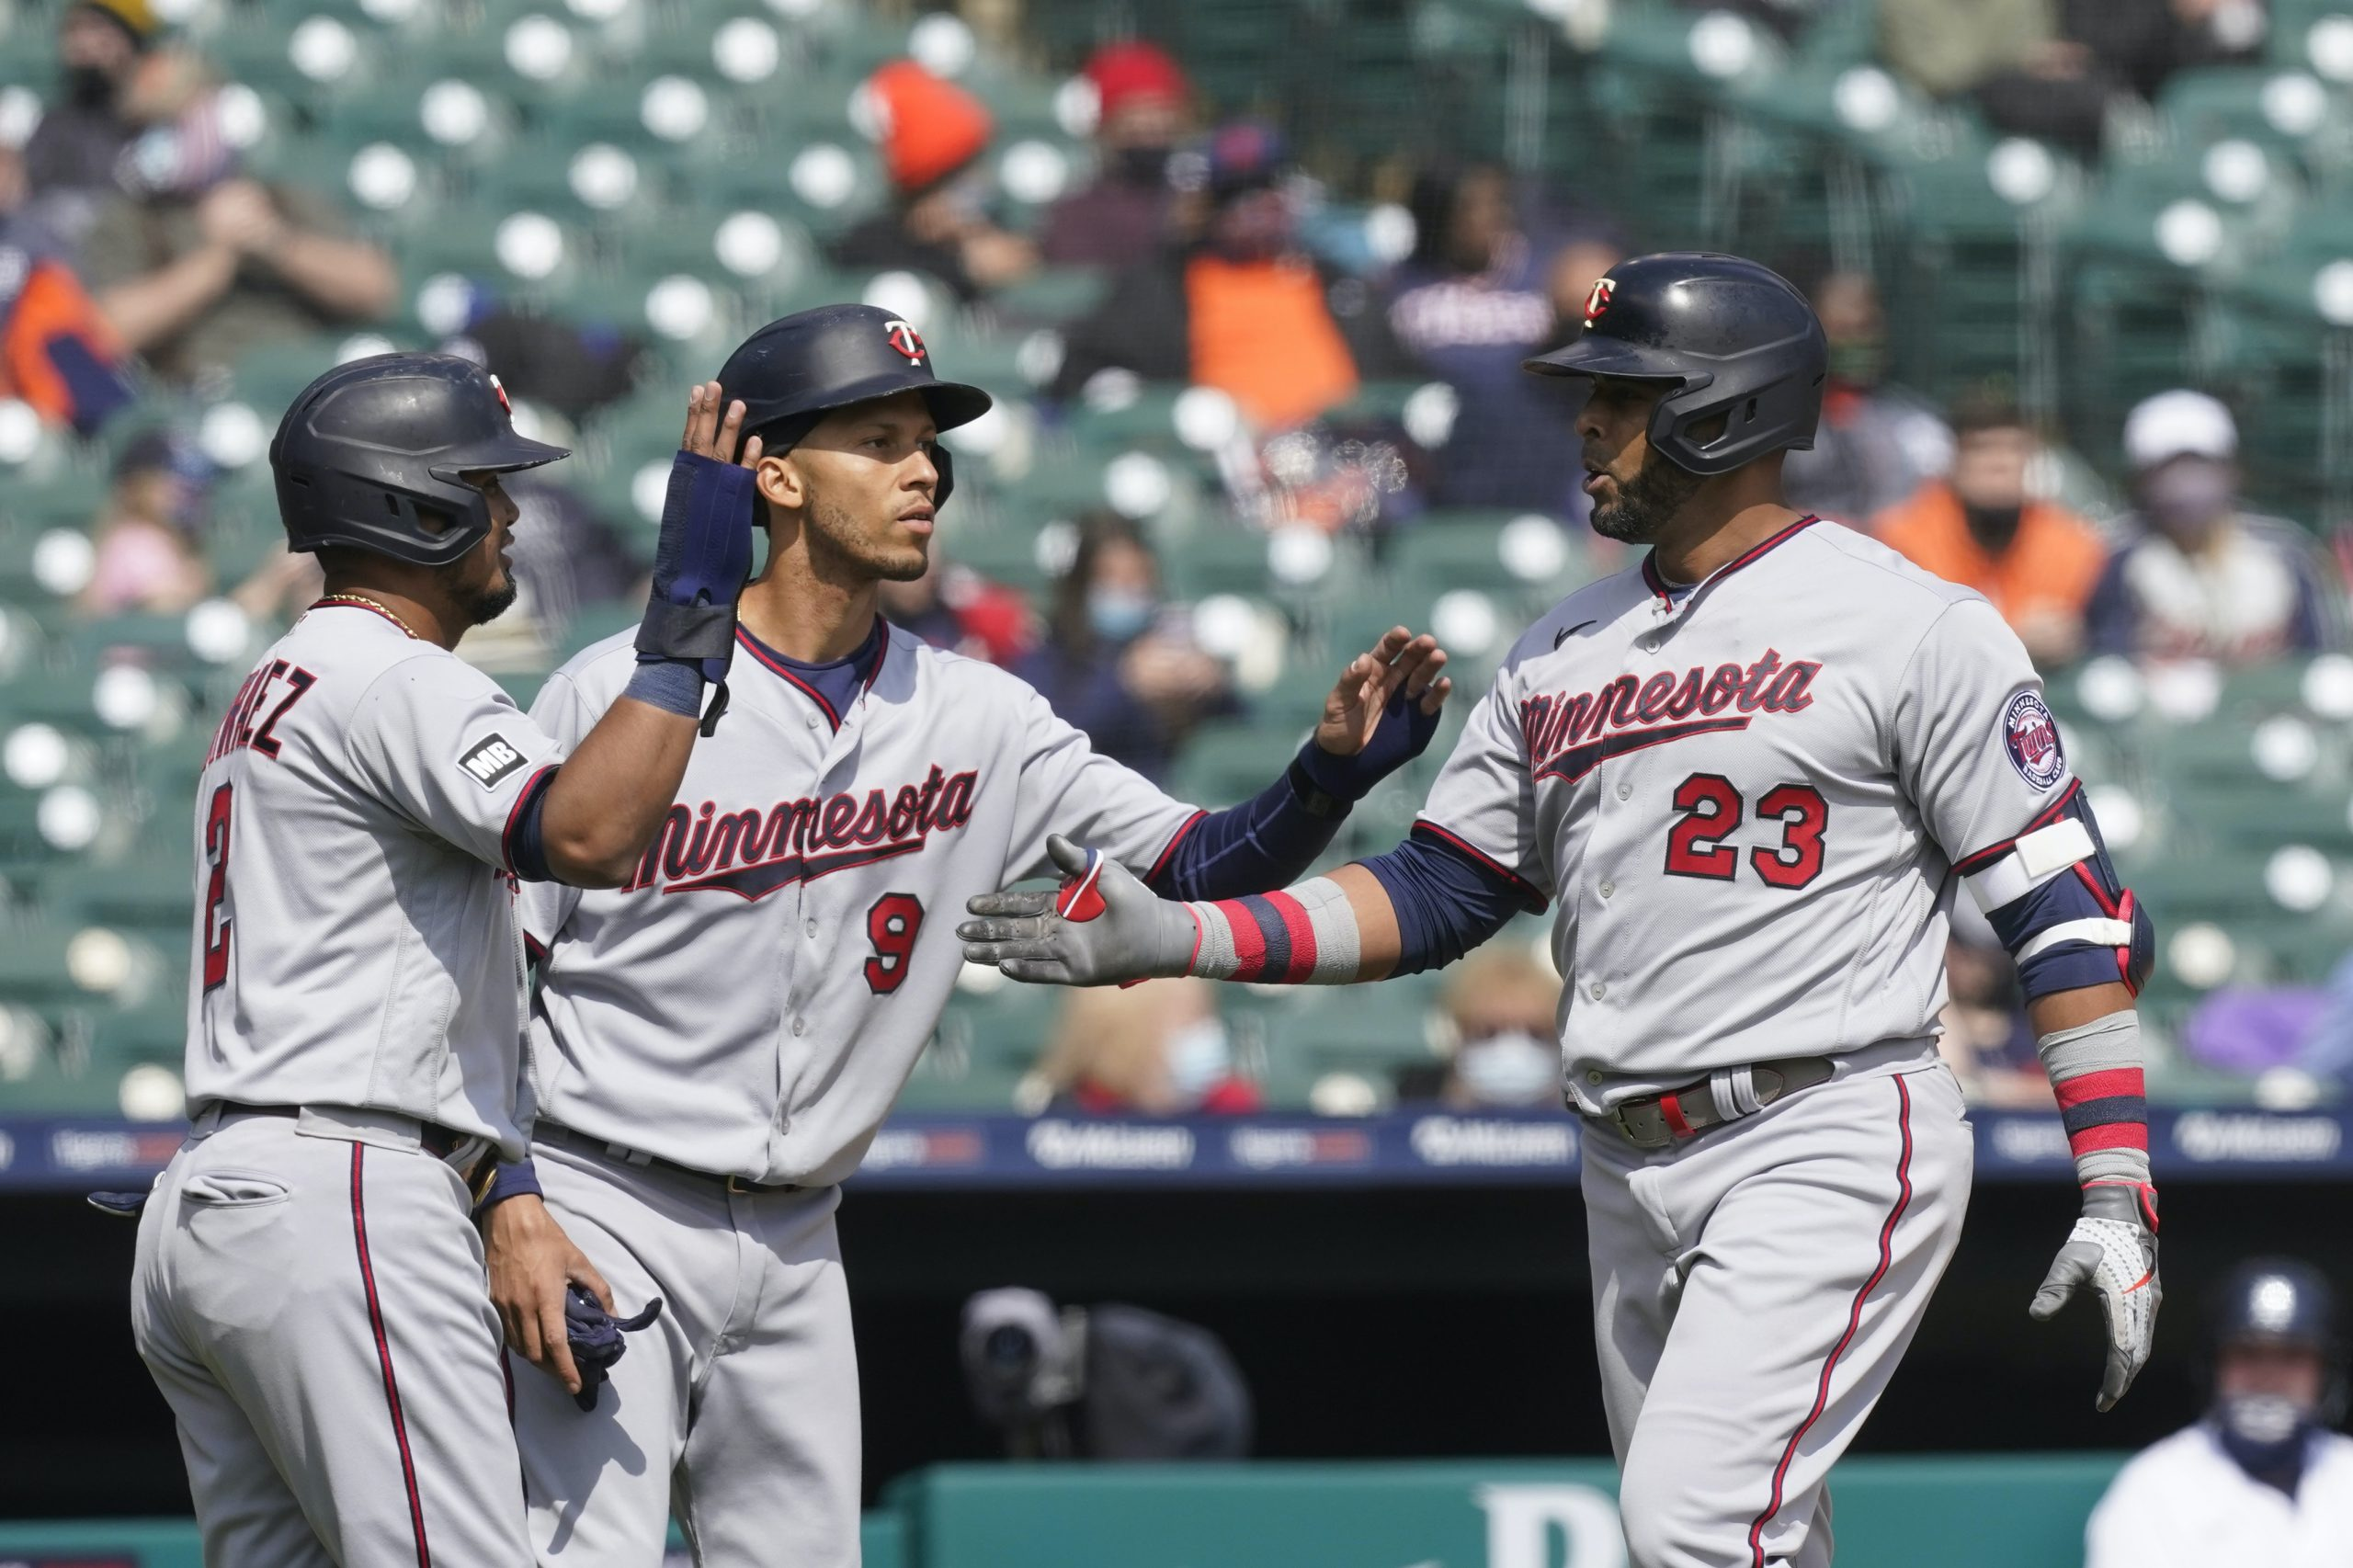 Twins vs Tigers today